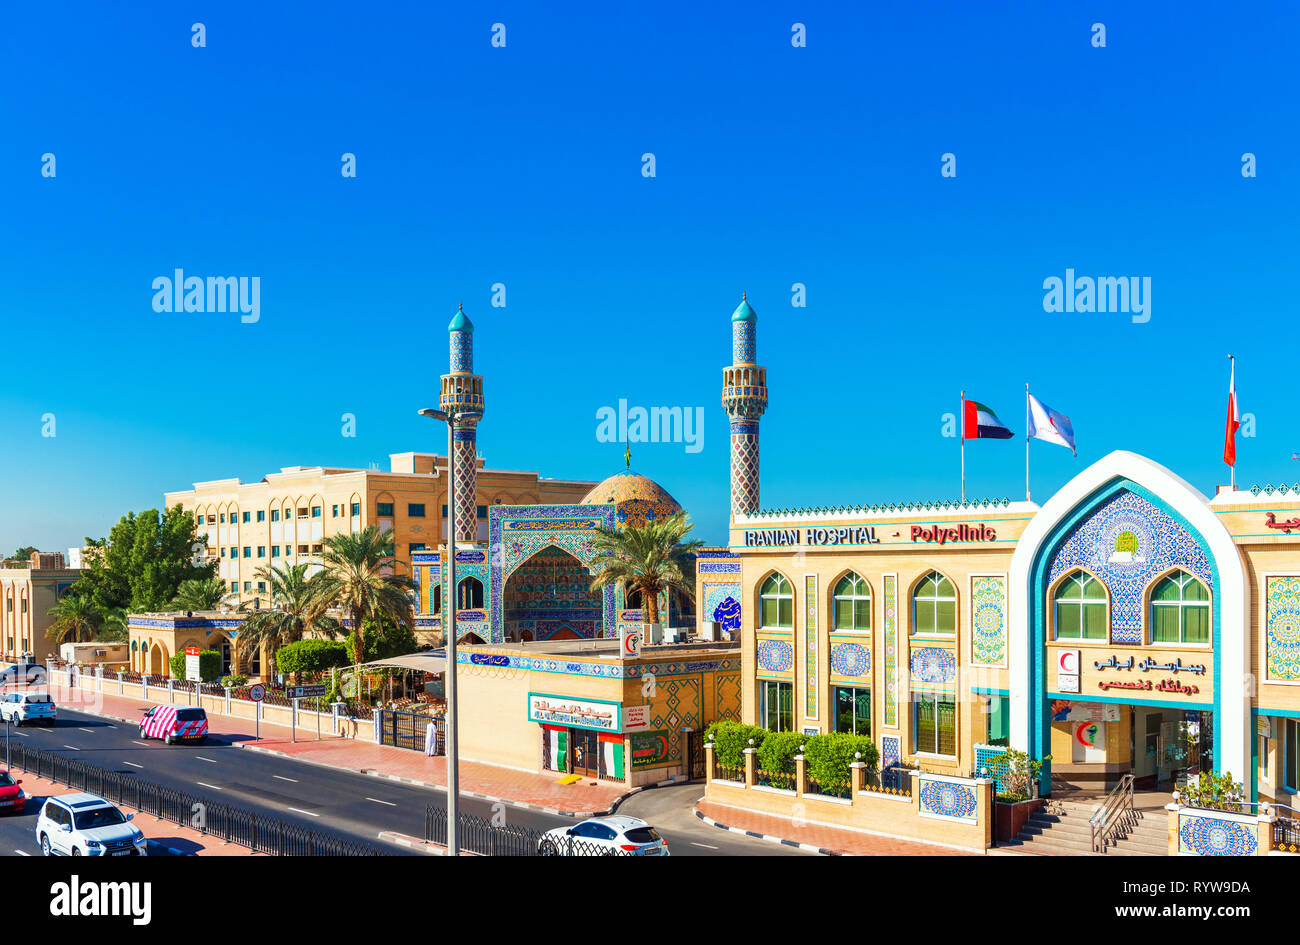 DUBAI, UNITED ARAB EMIRATES - DECEMBER 13, 2018: Iranian Mosque on the city street. Copy space for text - Stock Image